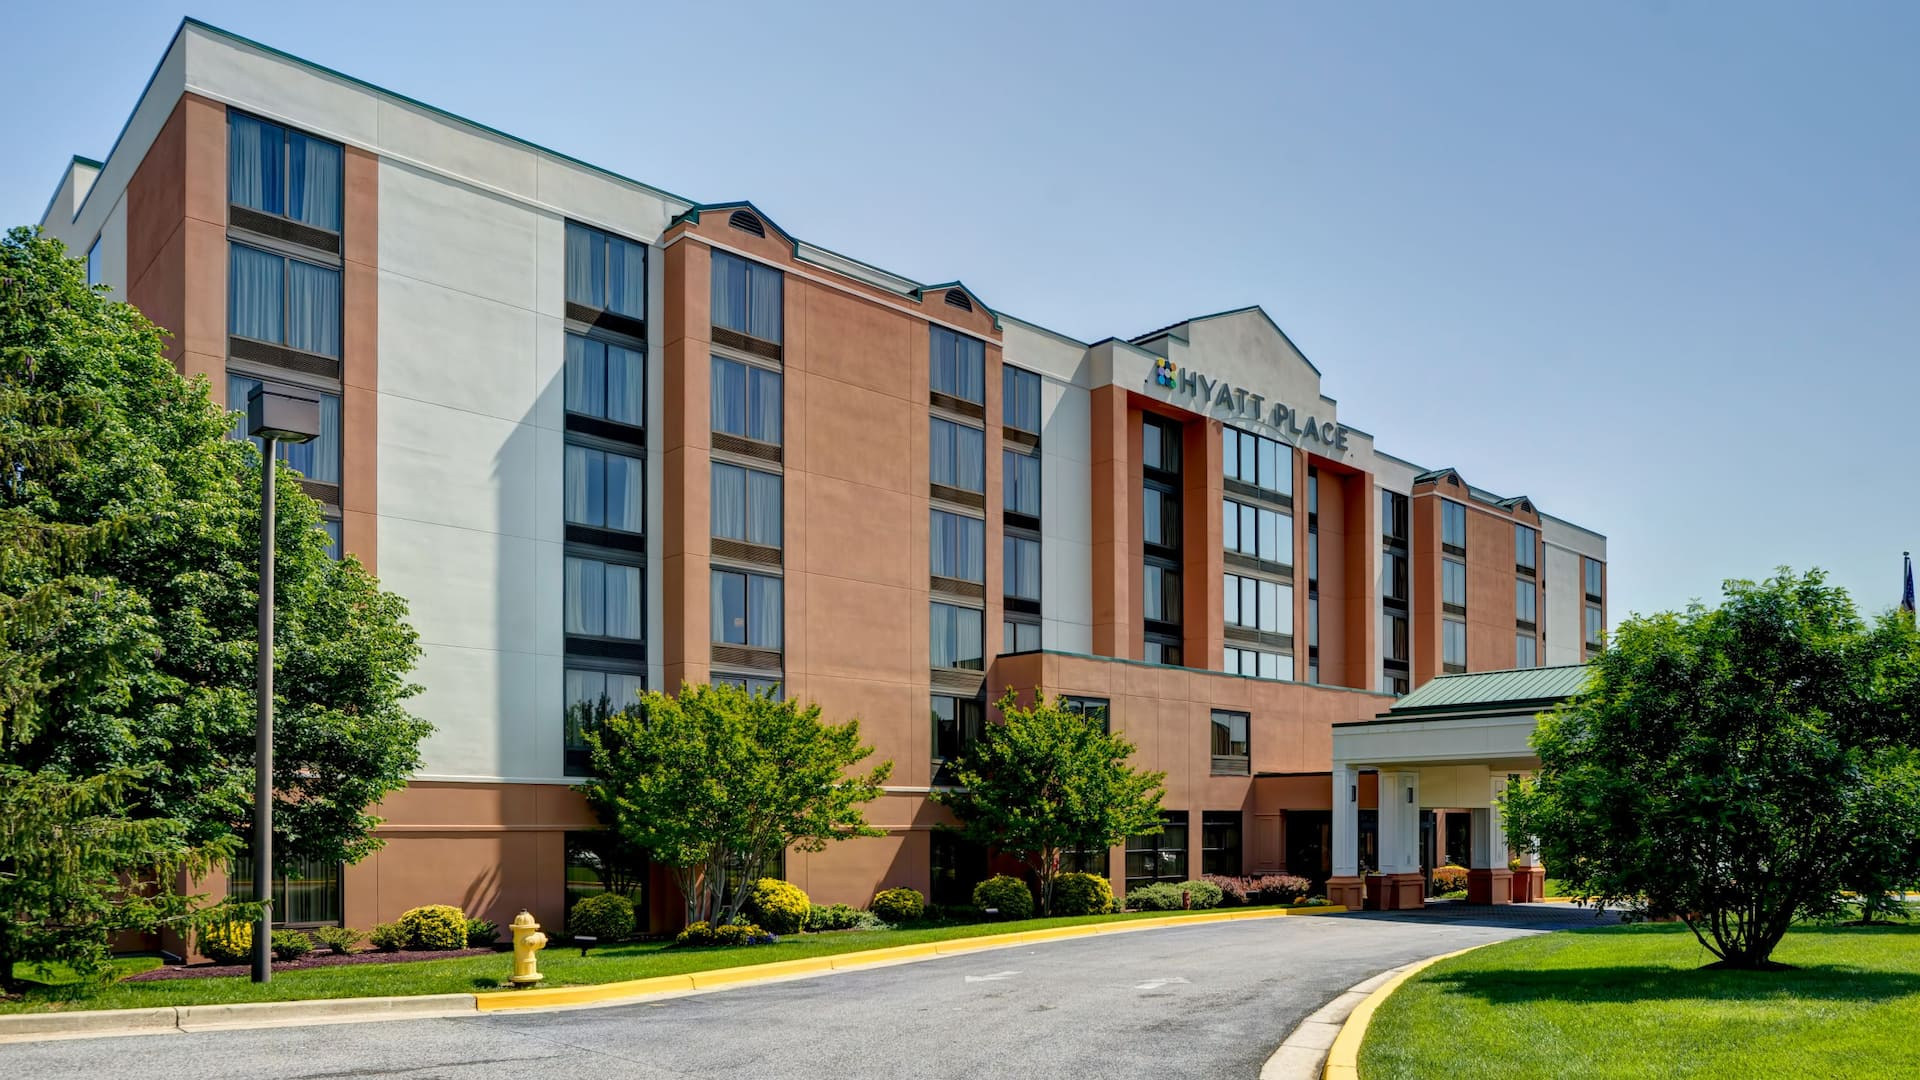 Hyatt Place Baltimore / BWI Airport Exterior